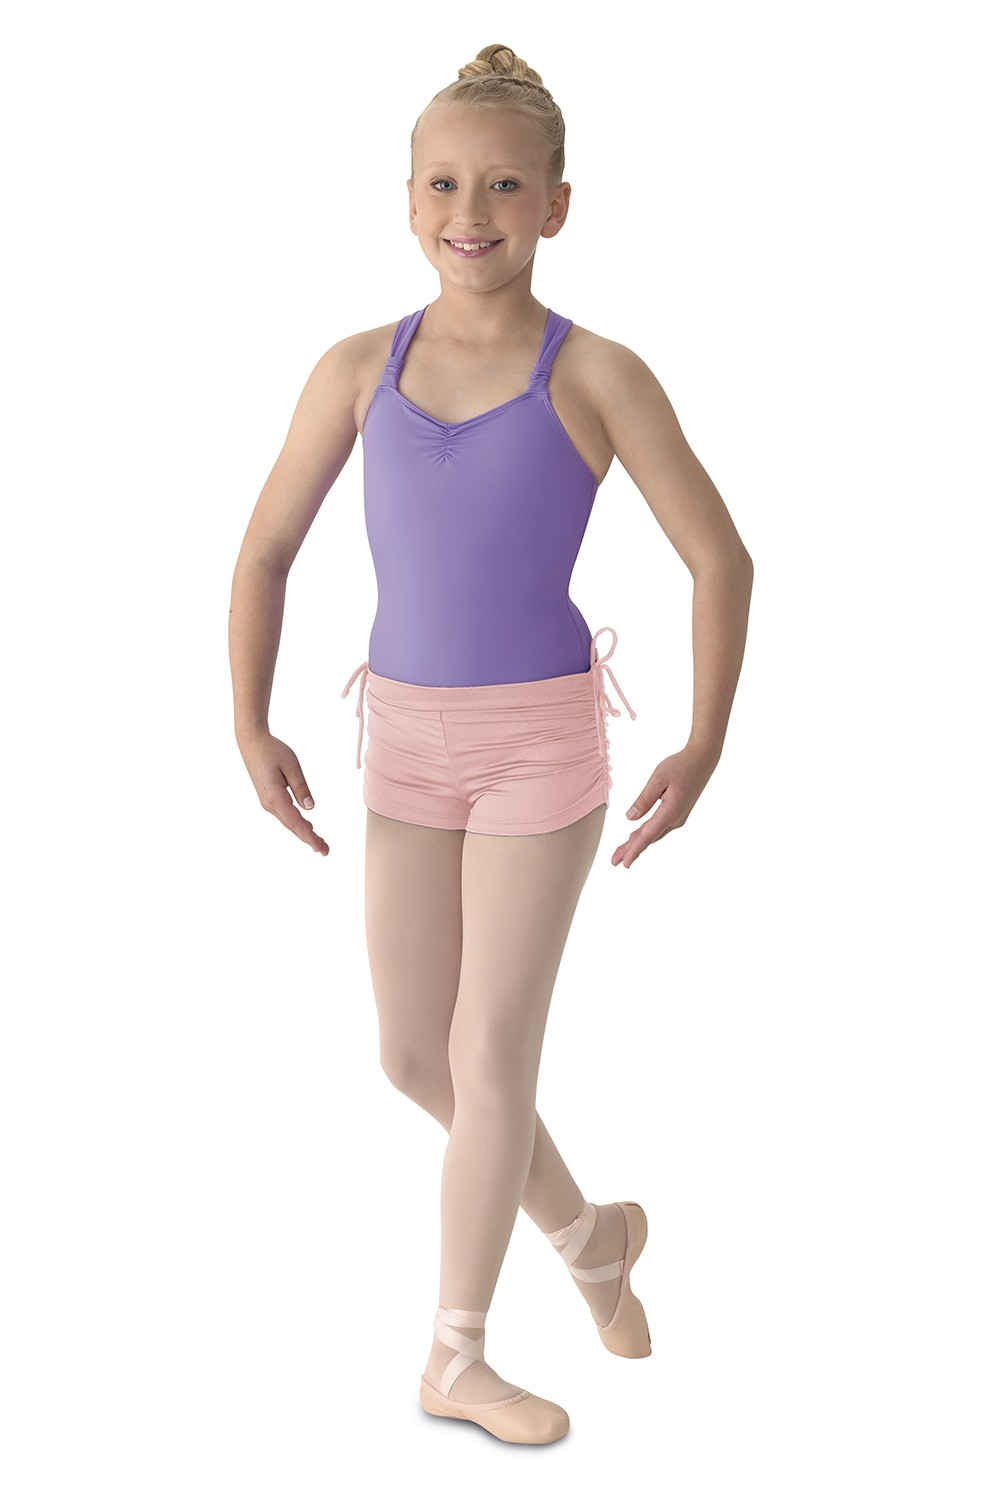 Children's Dance Shorts